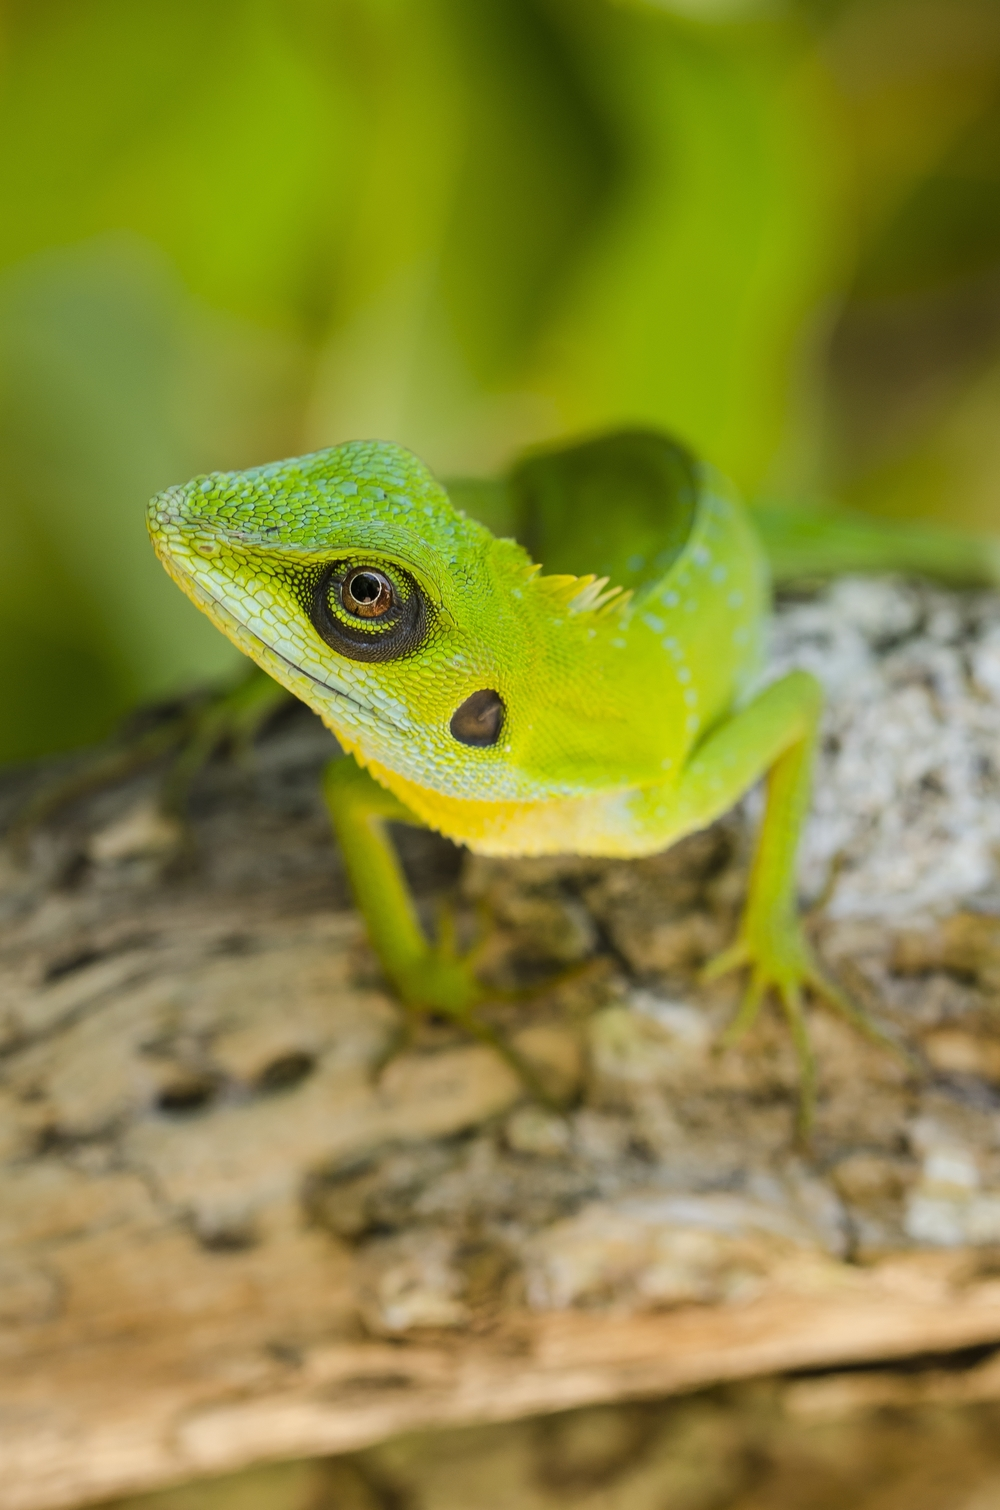 Green-crested Lizard - Perhentian Islands